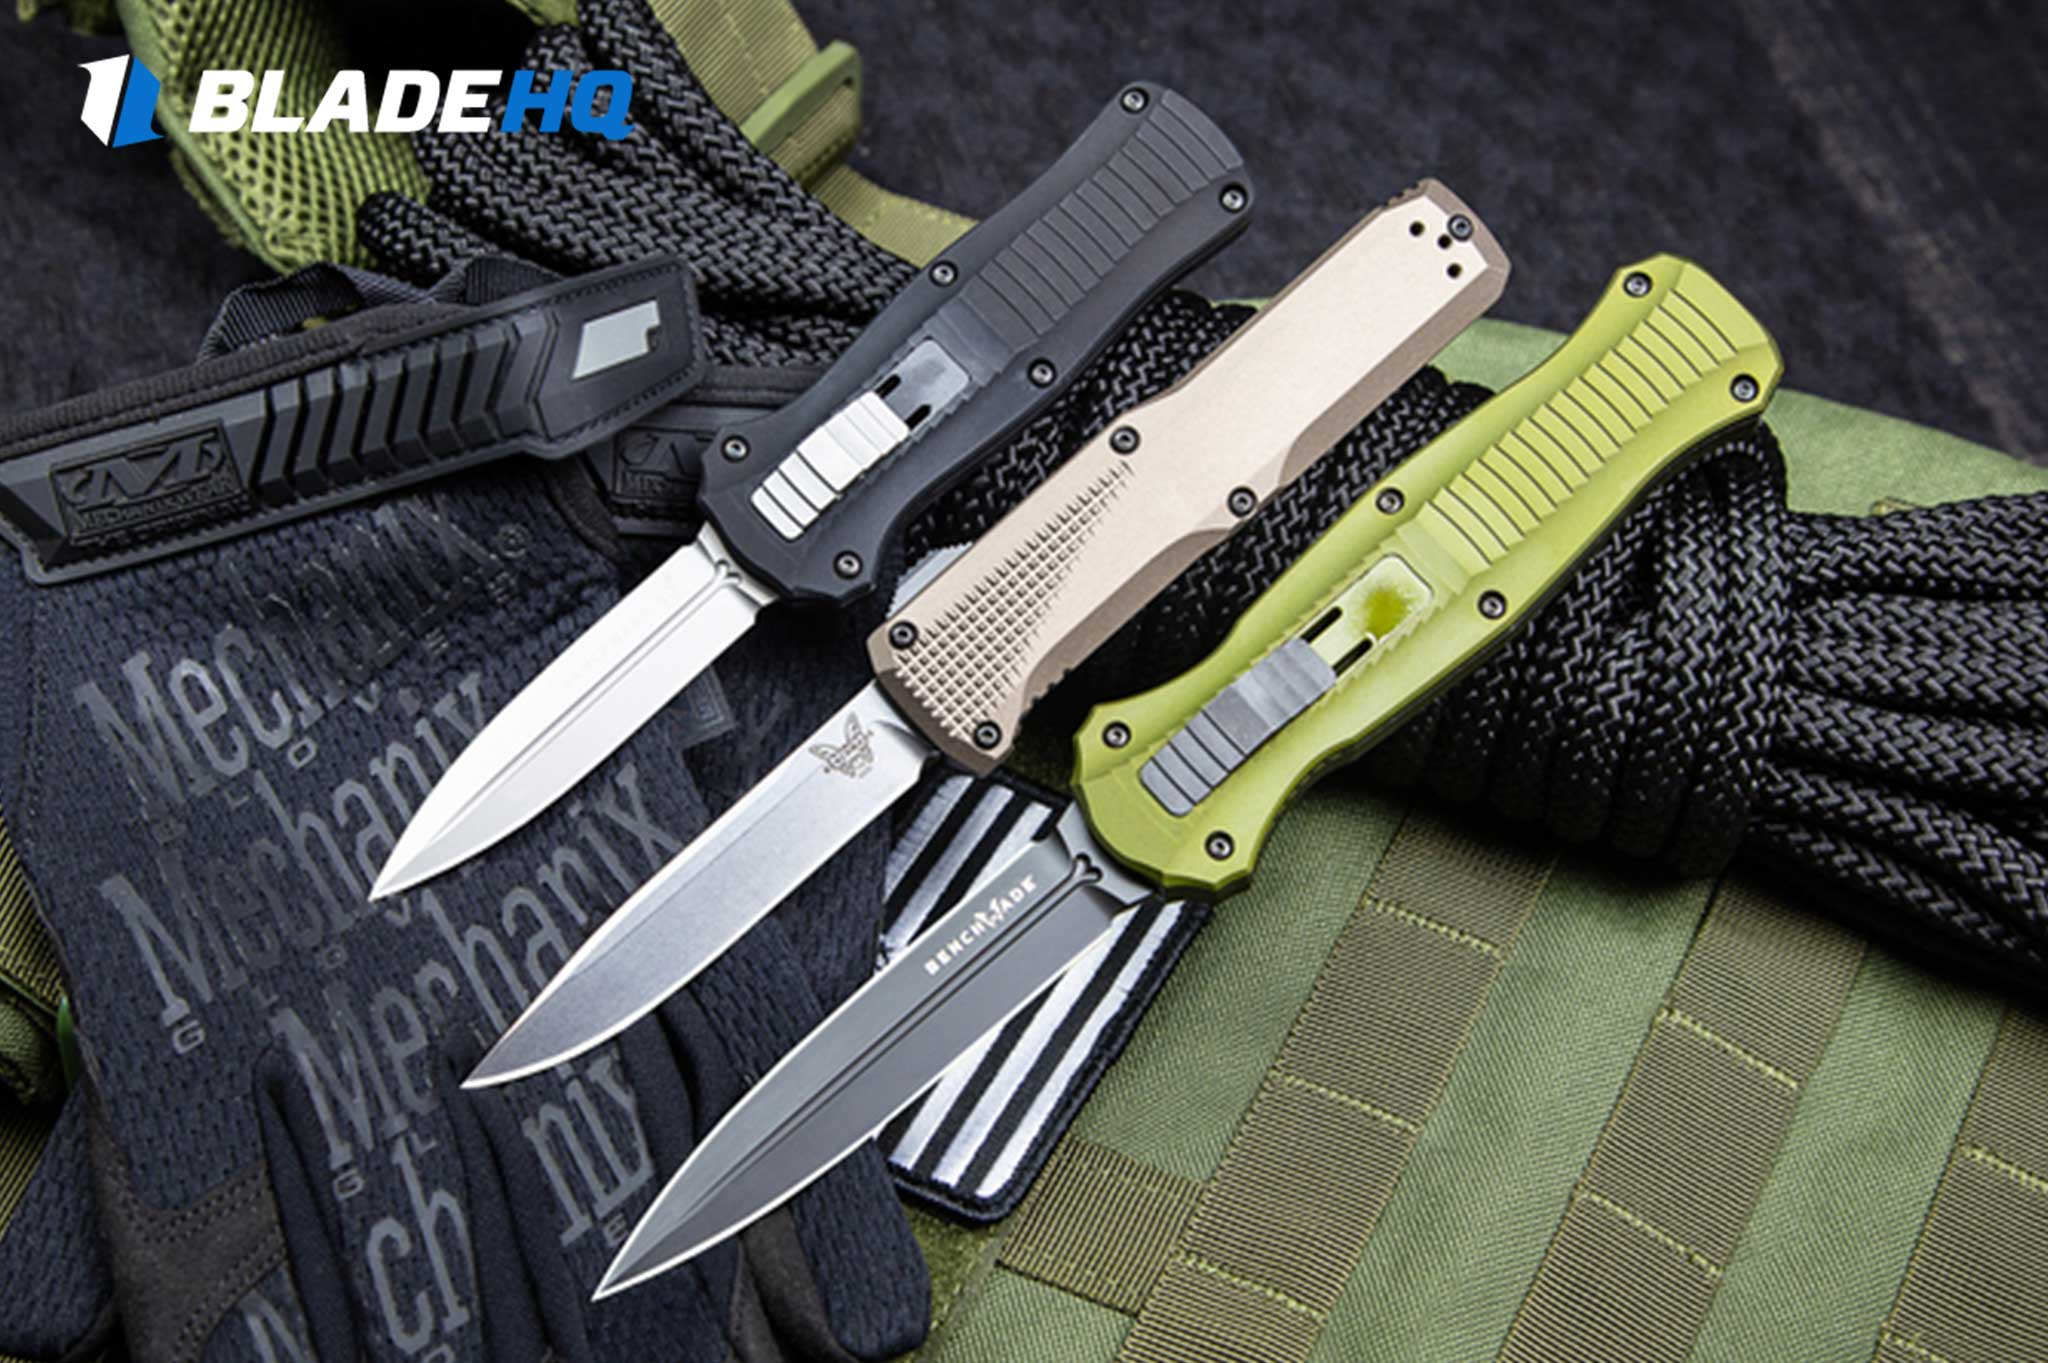 Action - How to Choose an OTF Knife